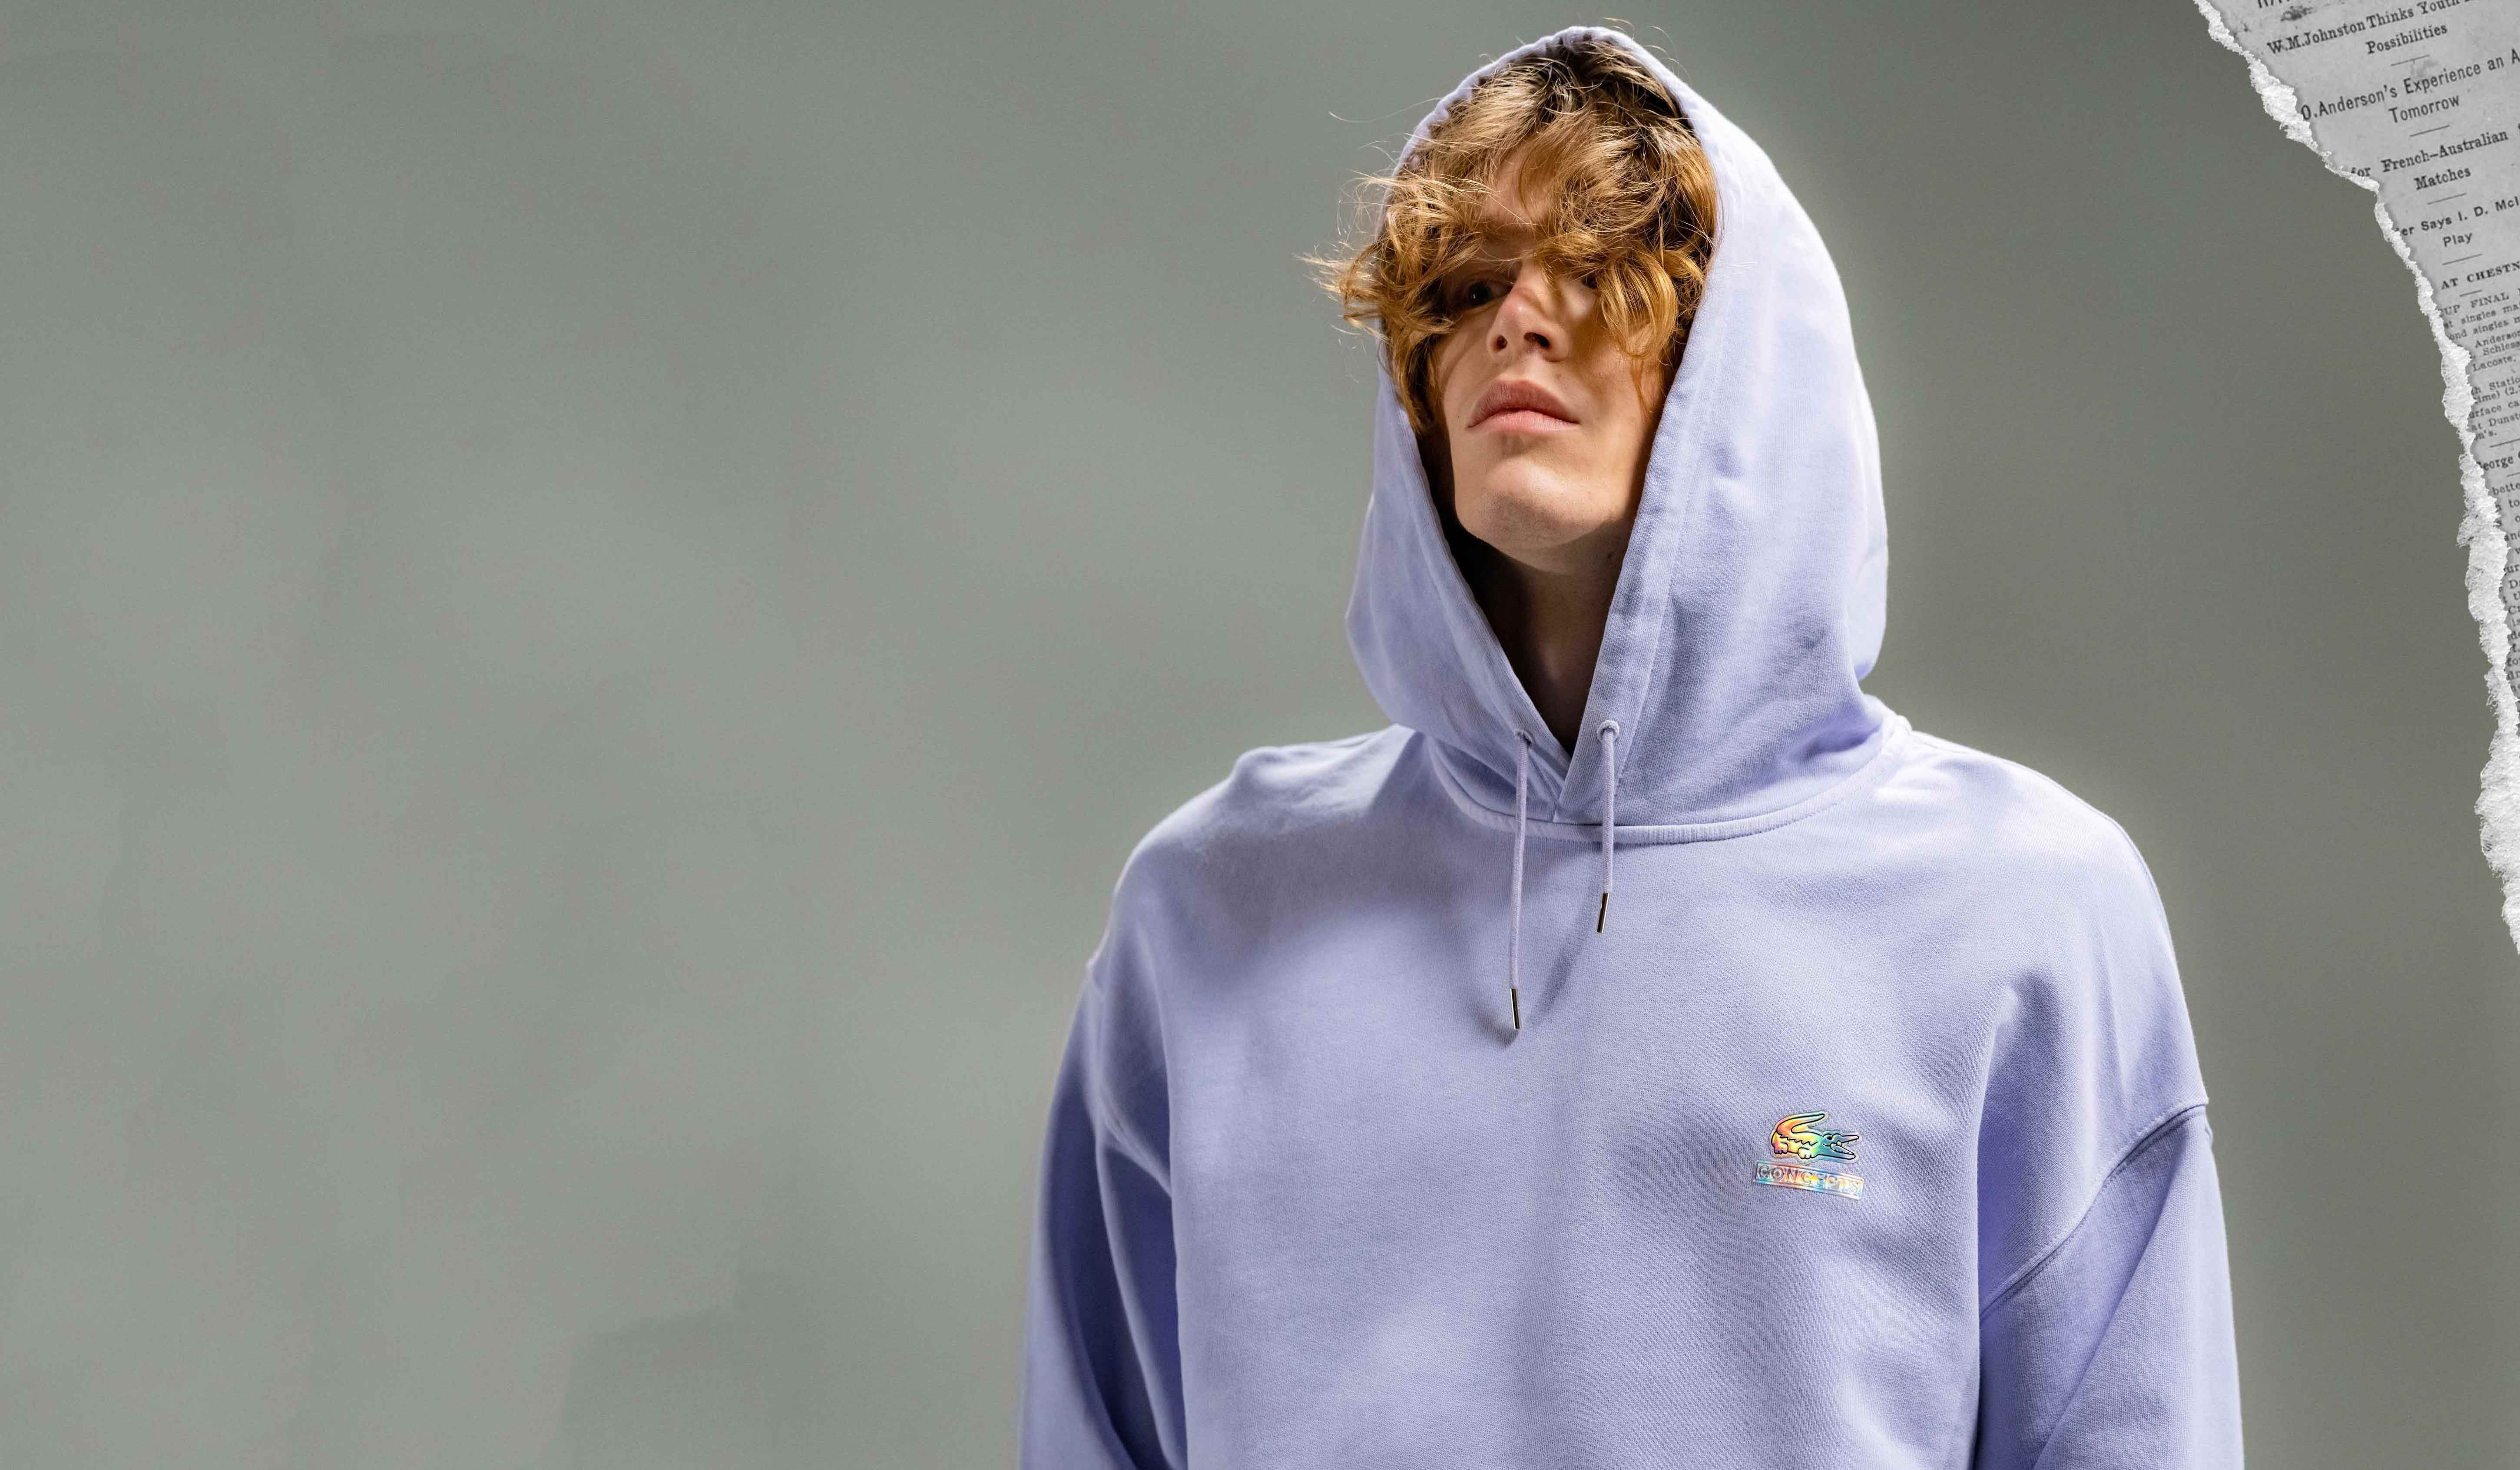 Boston-Based Retailer taps Lacoste for New Collaboration